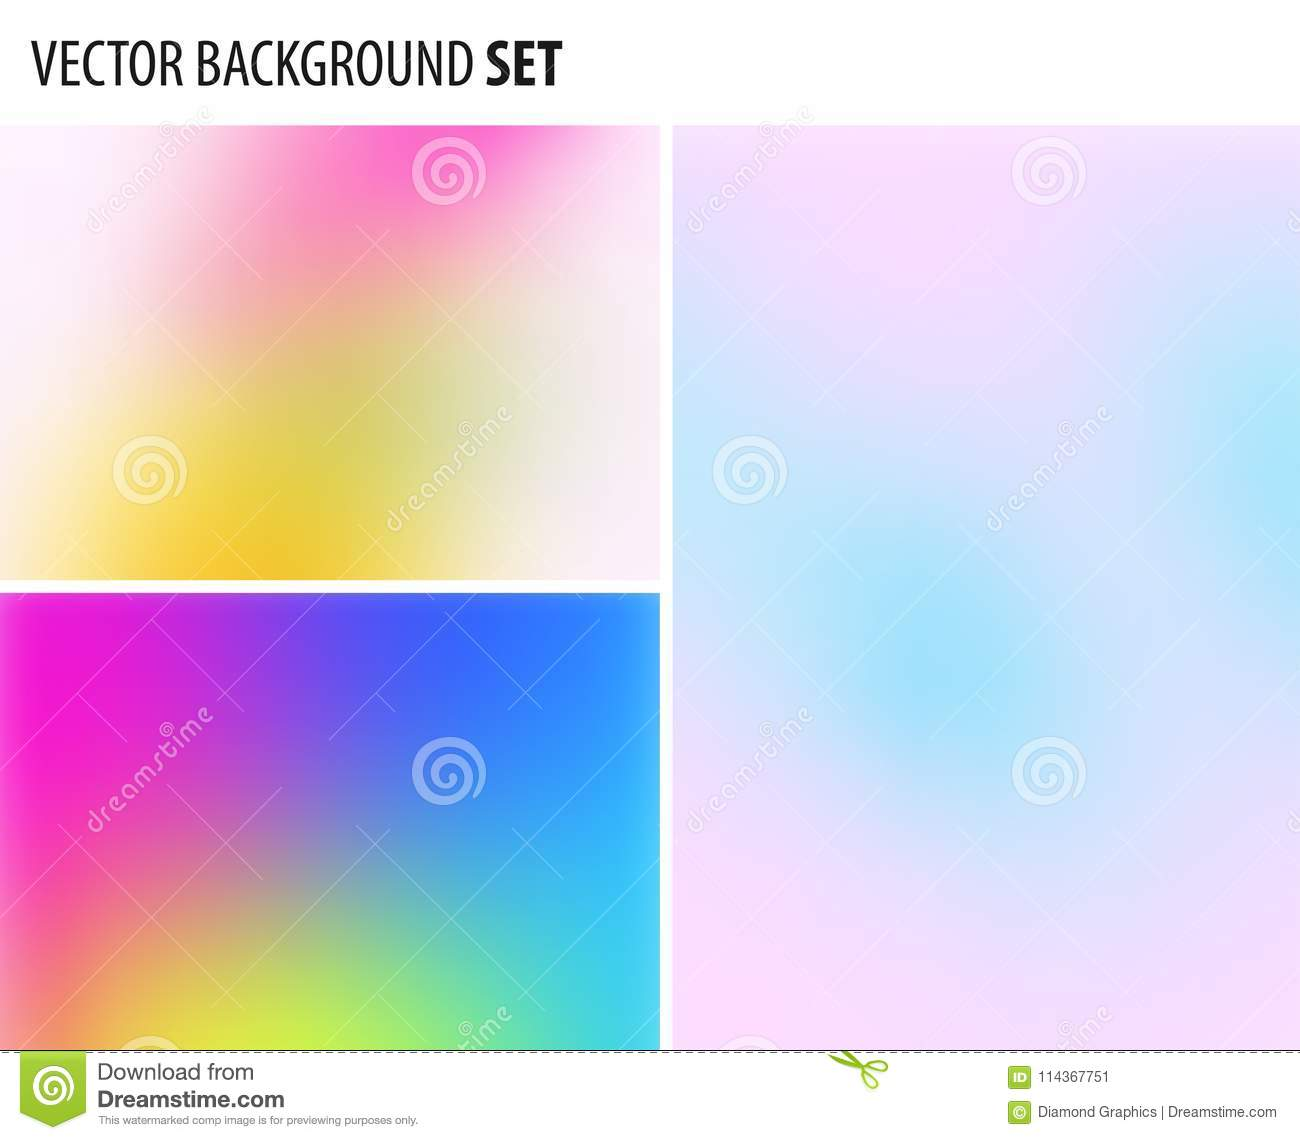 Set of Abstract blurred background design, vector elements for graphic template.